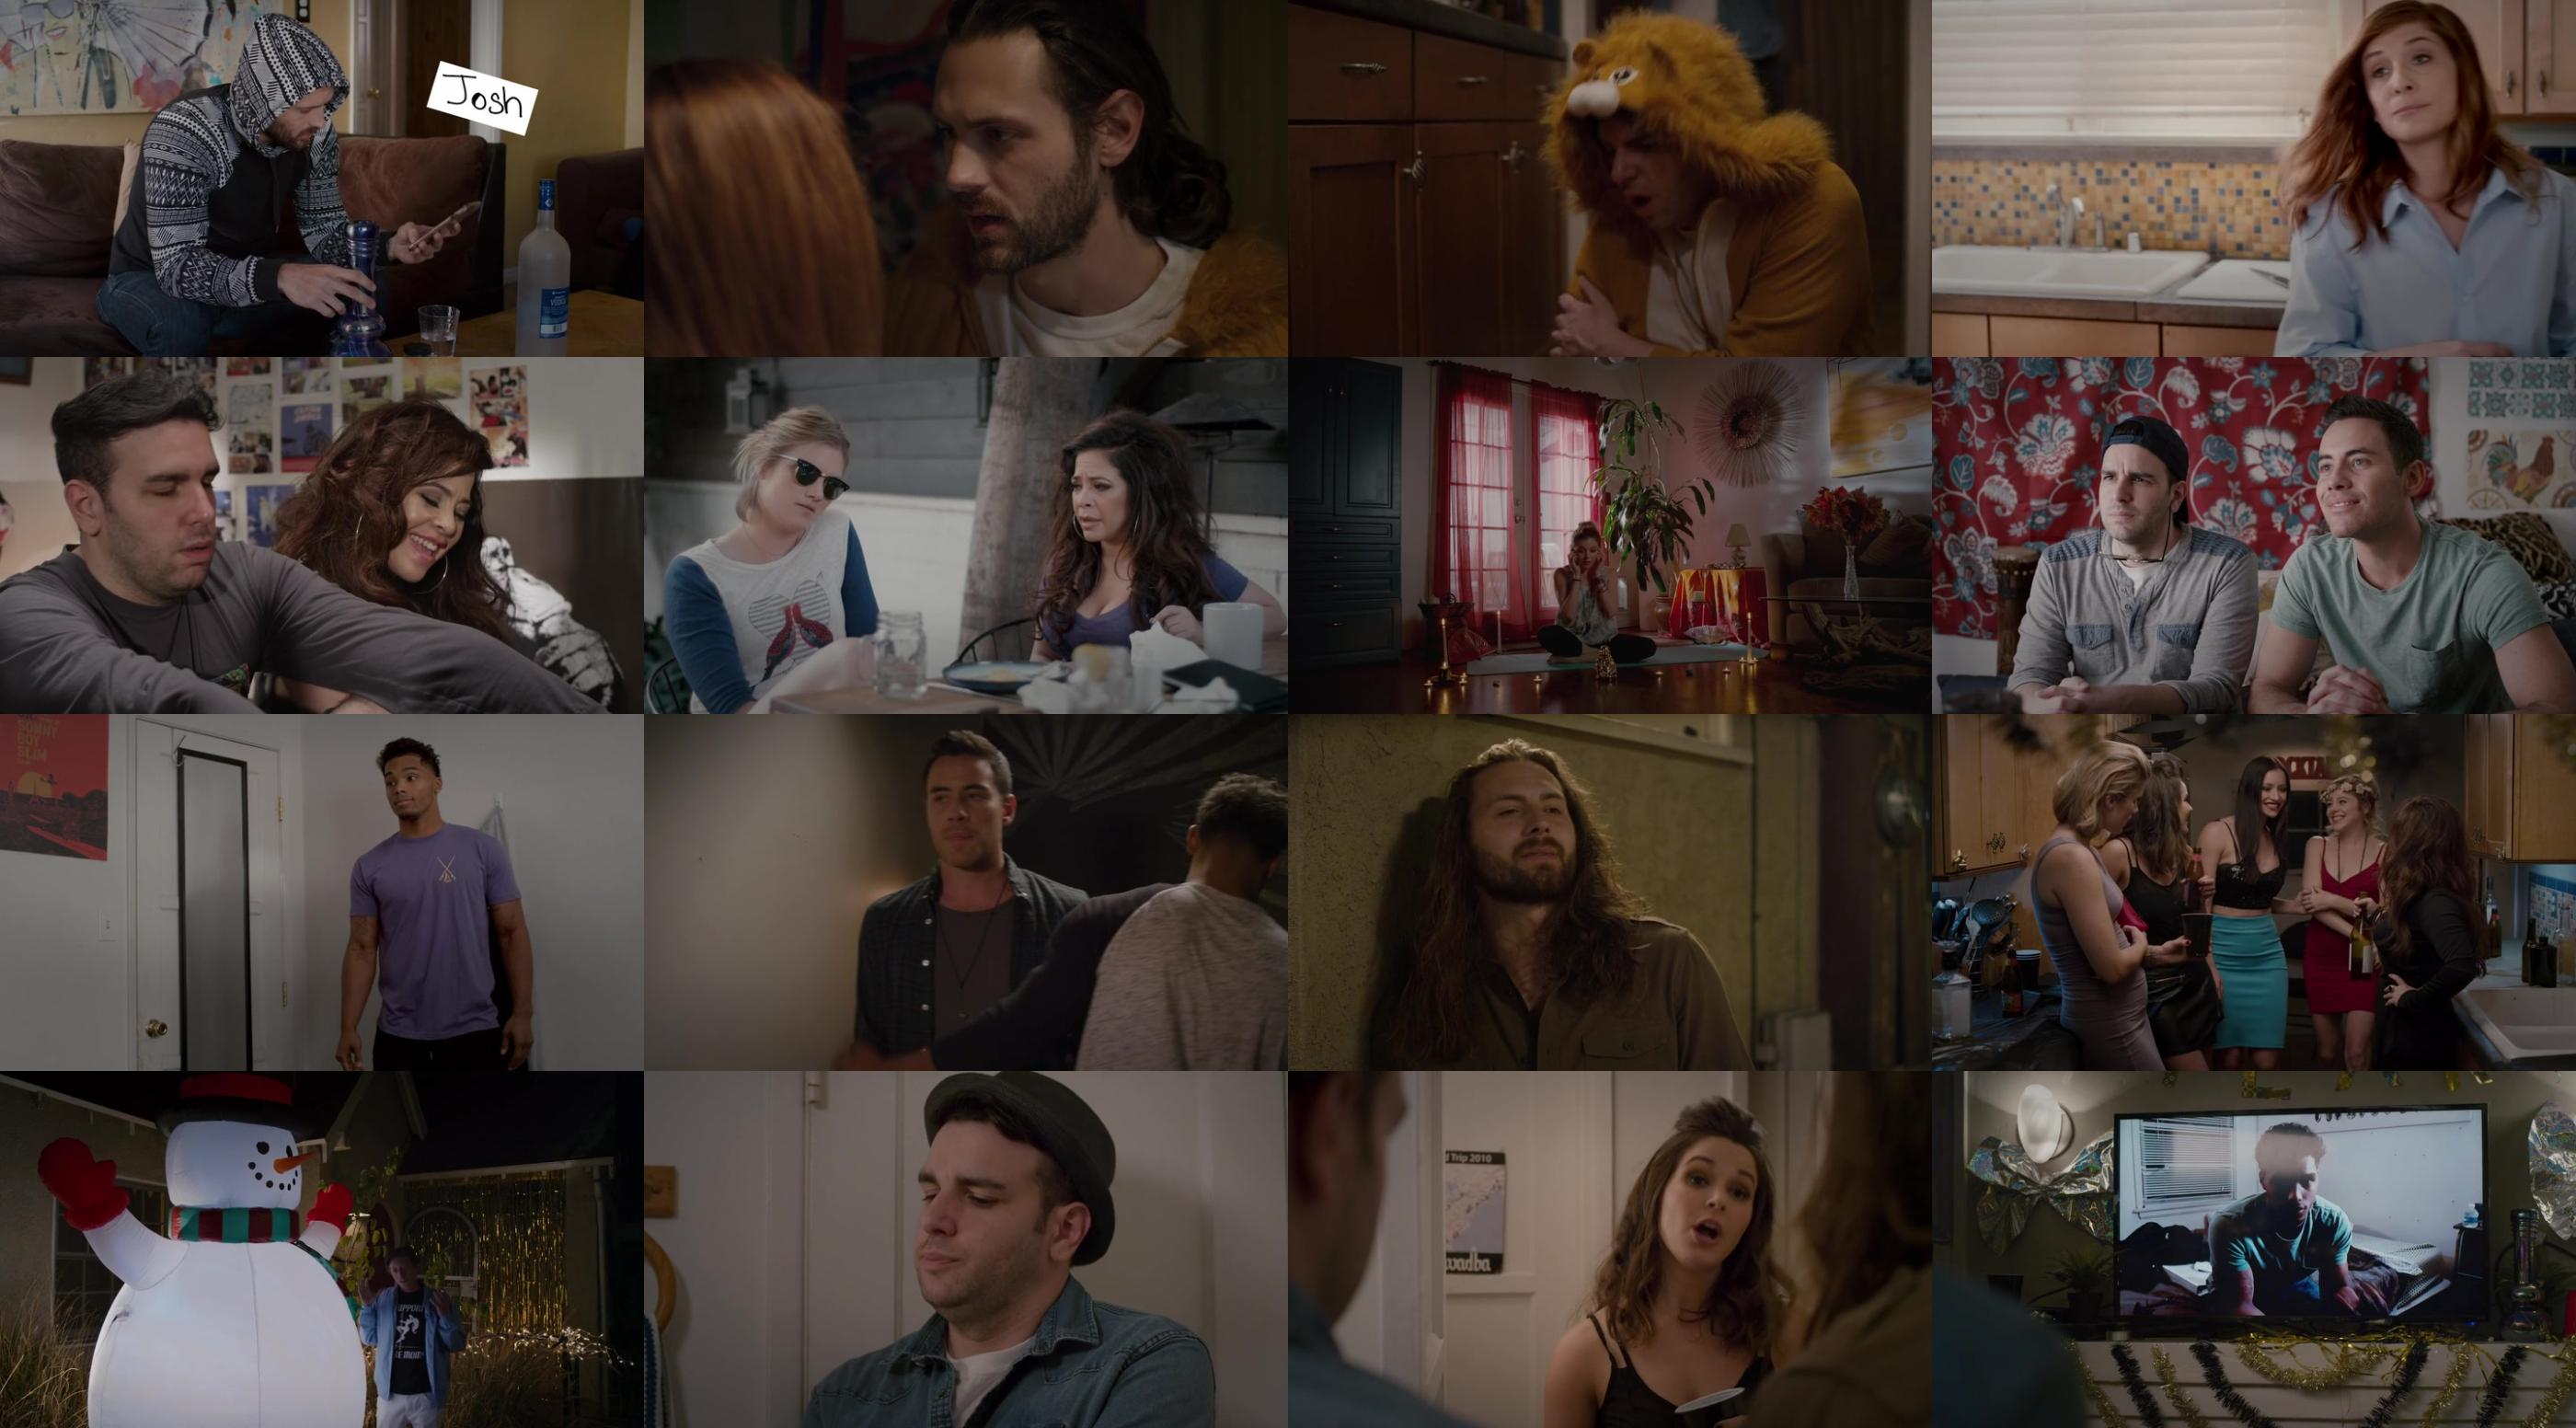 1 2 New Year 2019 WEB DL x264 FGT